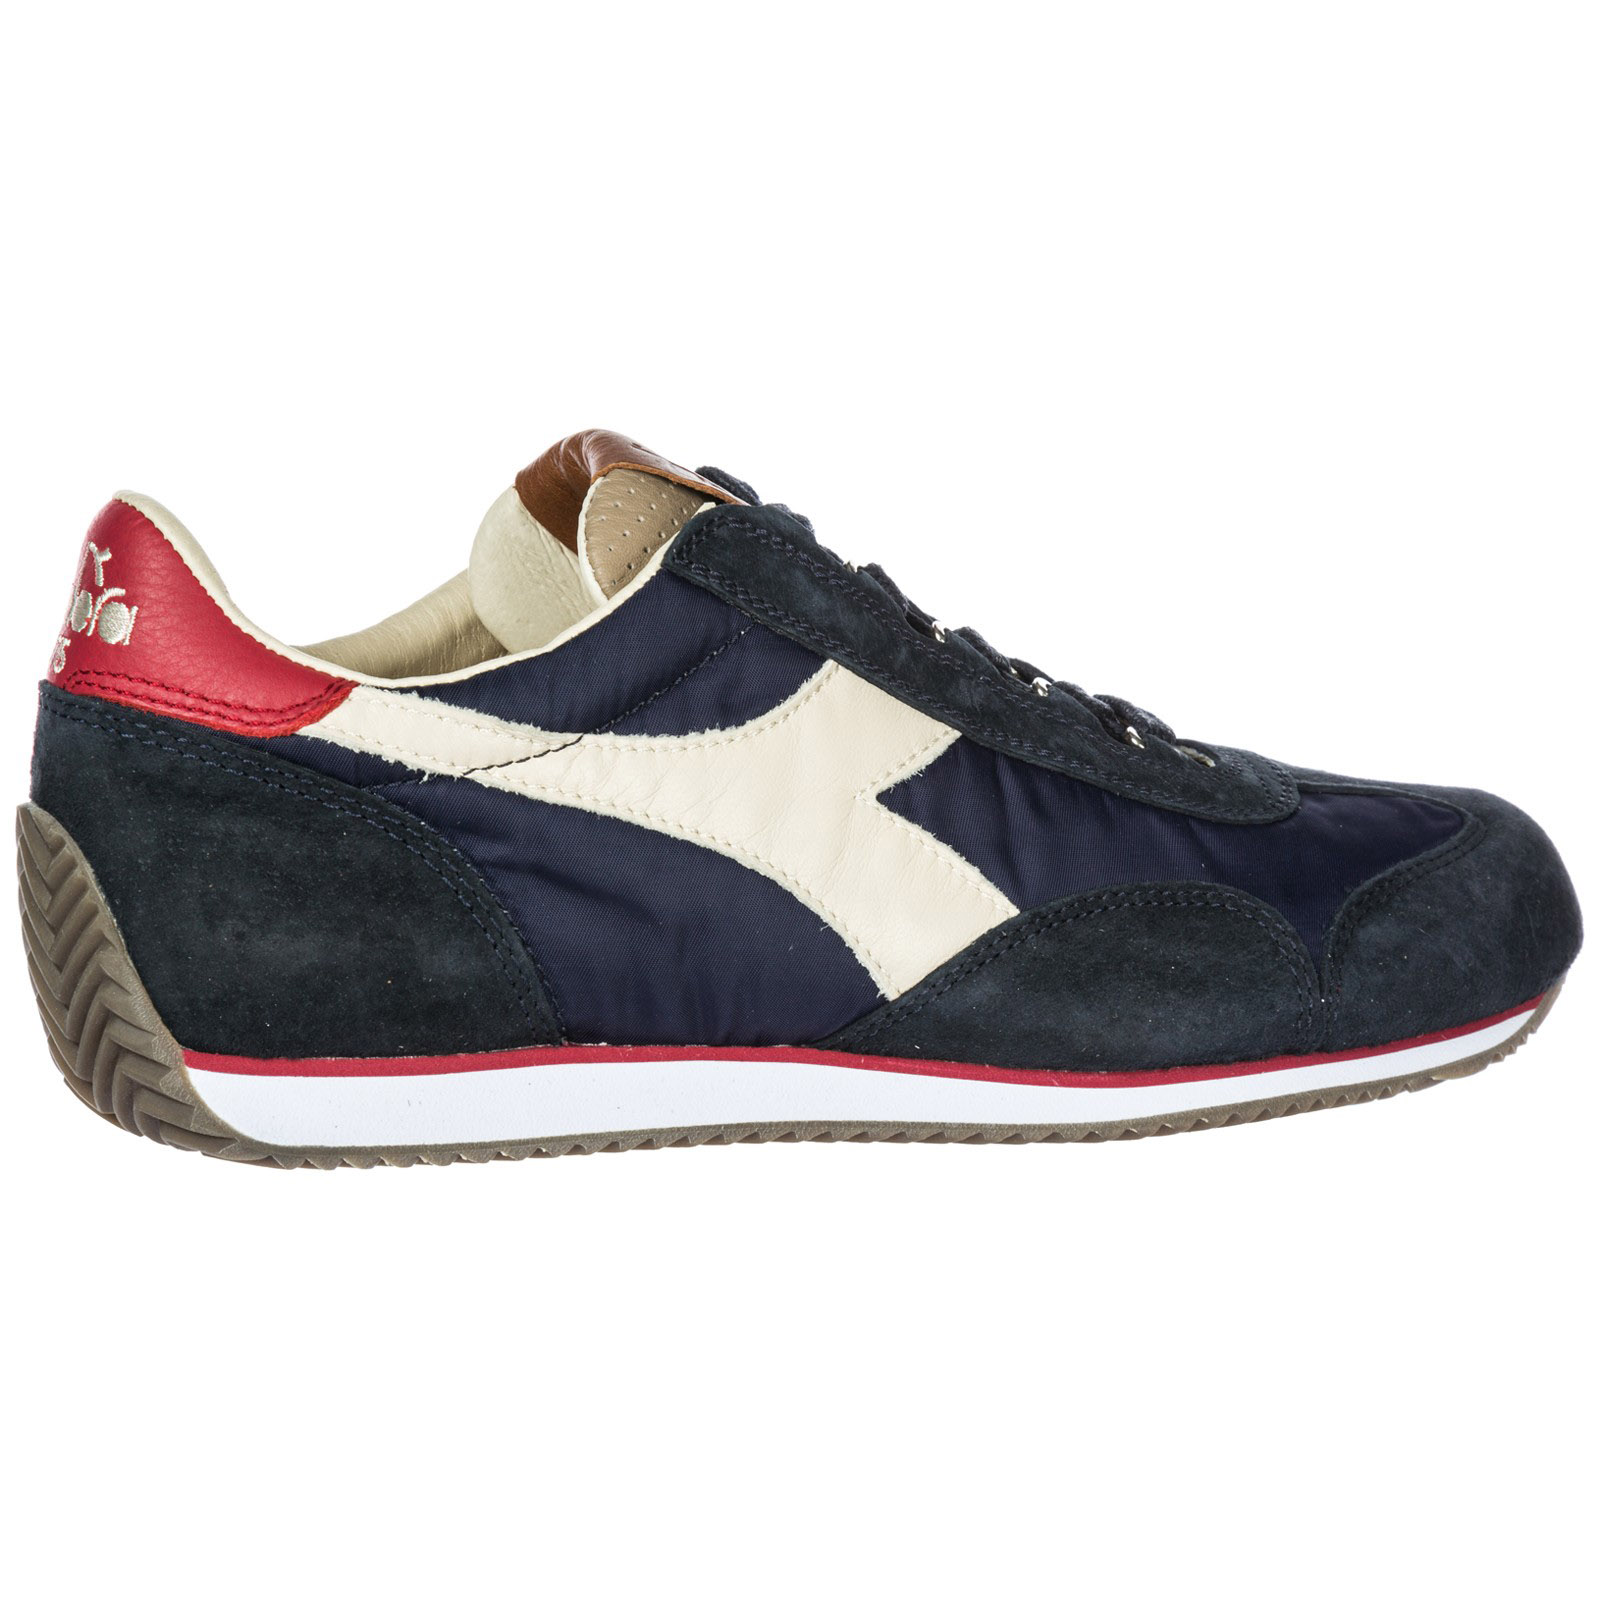 Men's shoes suede trainers sneakers equipe ita